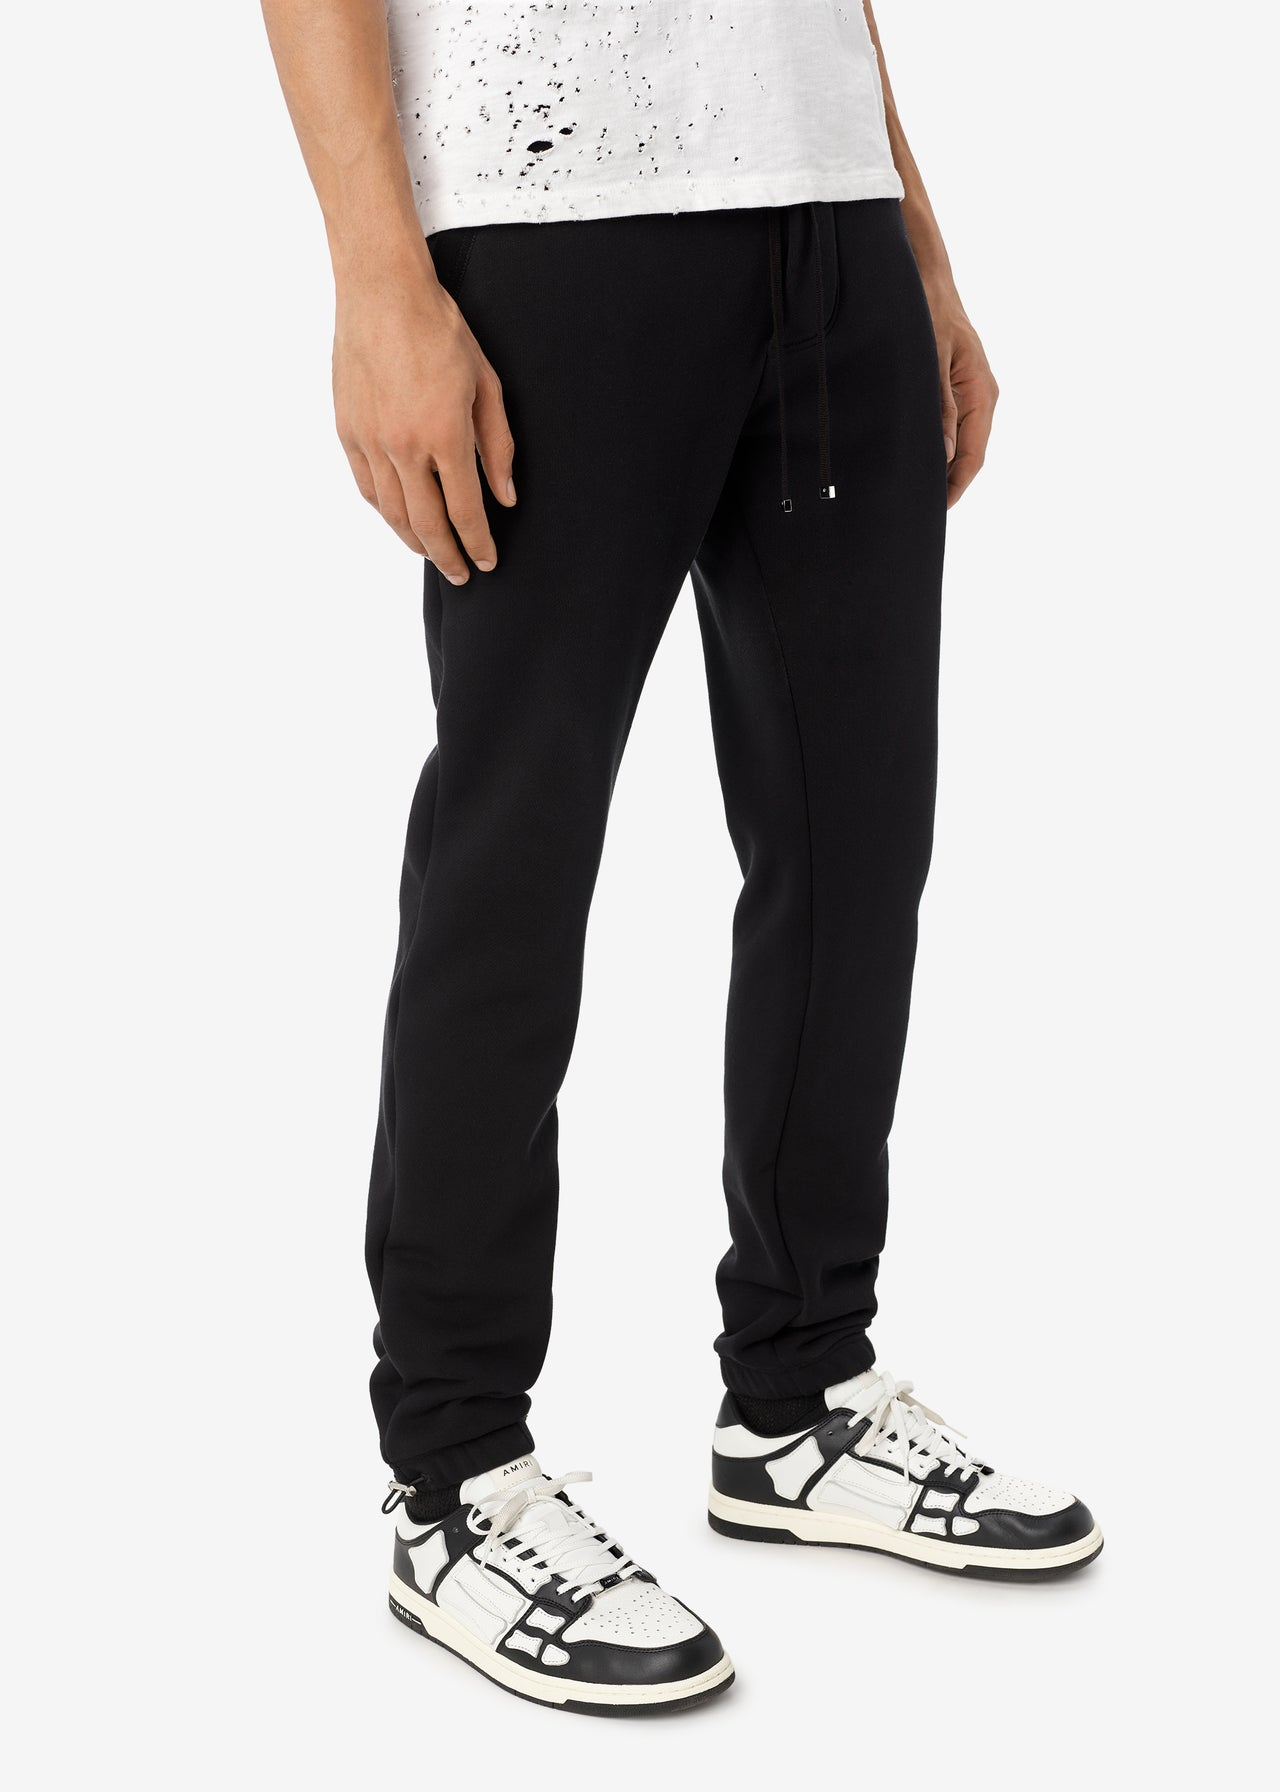 EXCLUSIVE M.A. SWEATPANTS - BLACK / BLACK